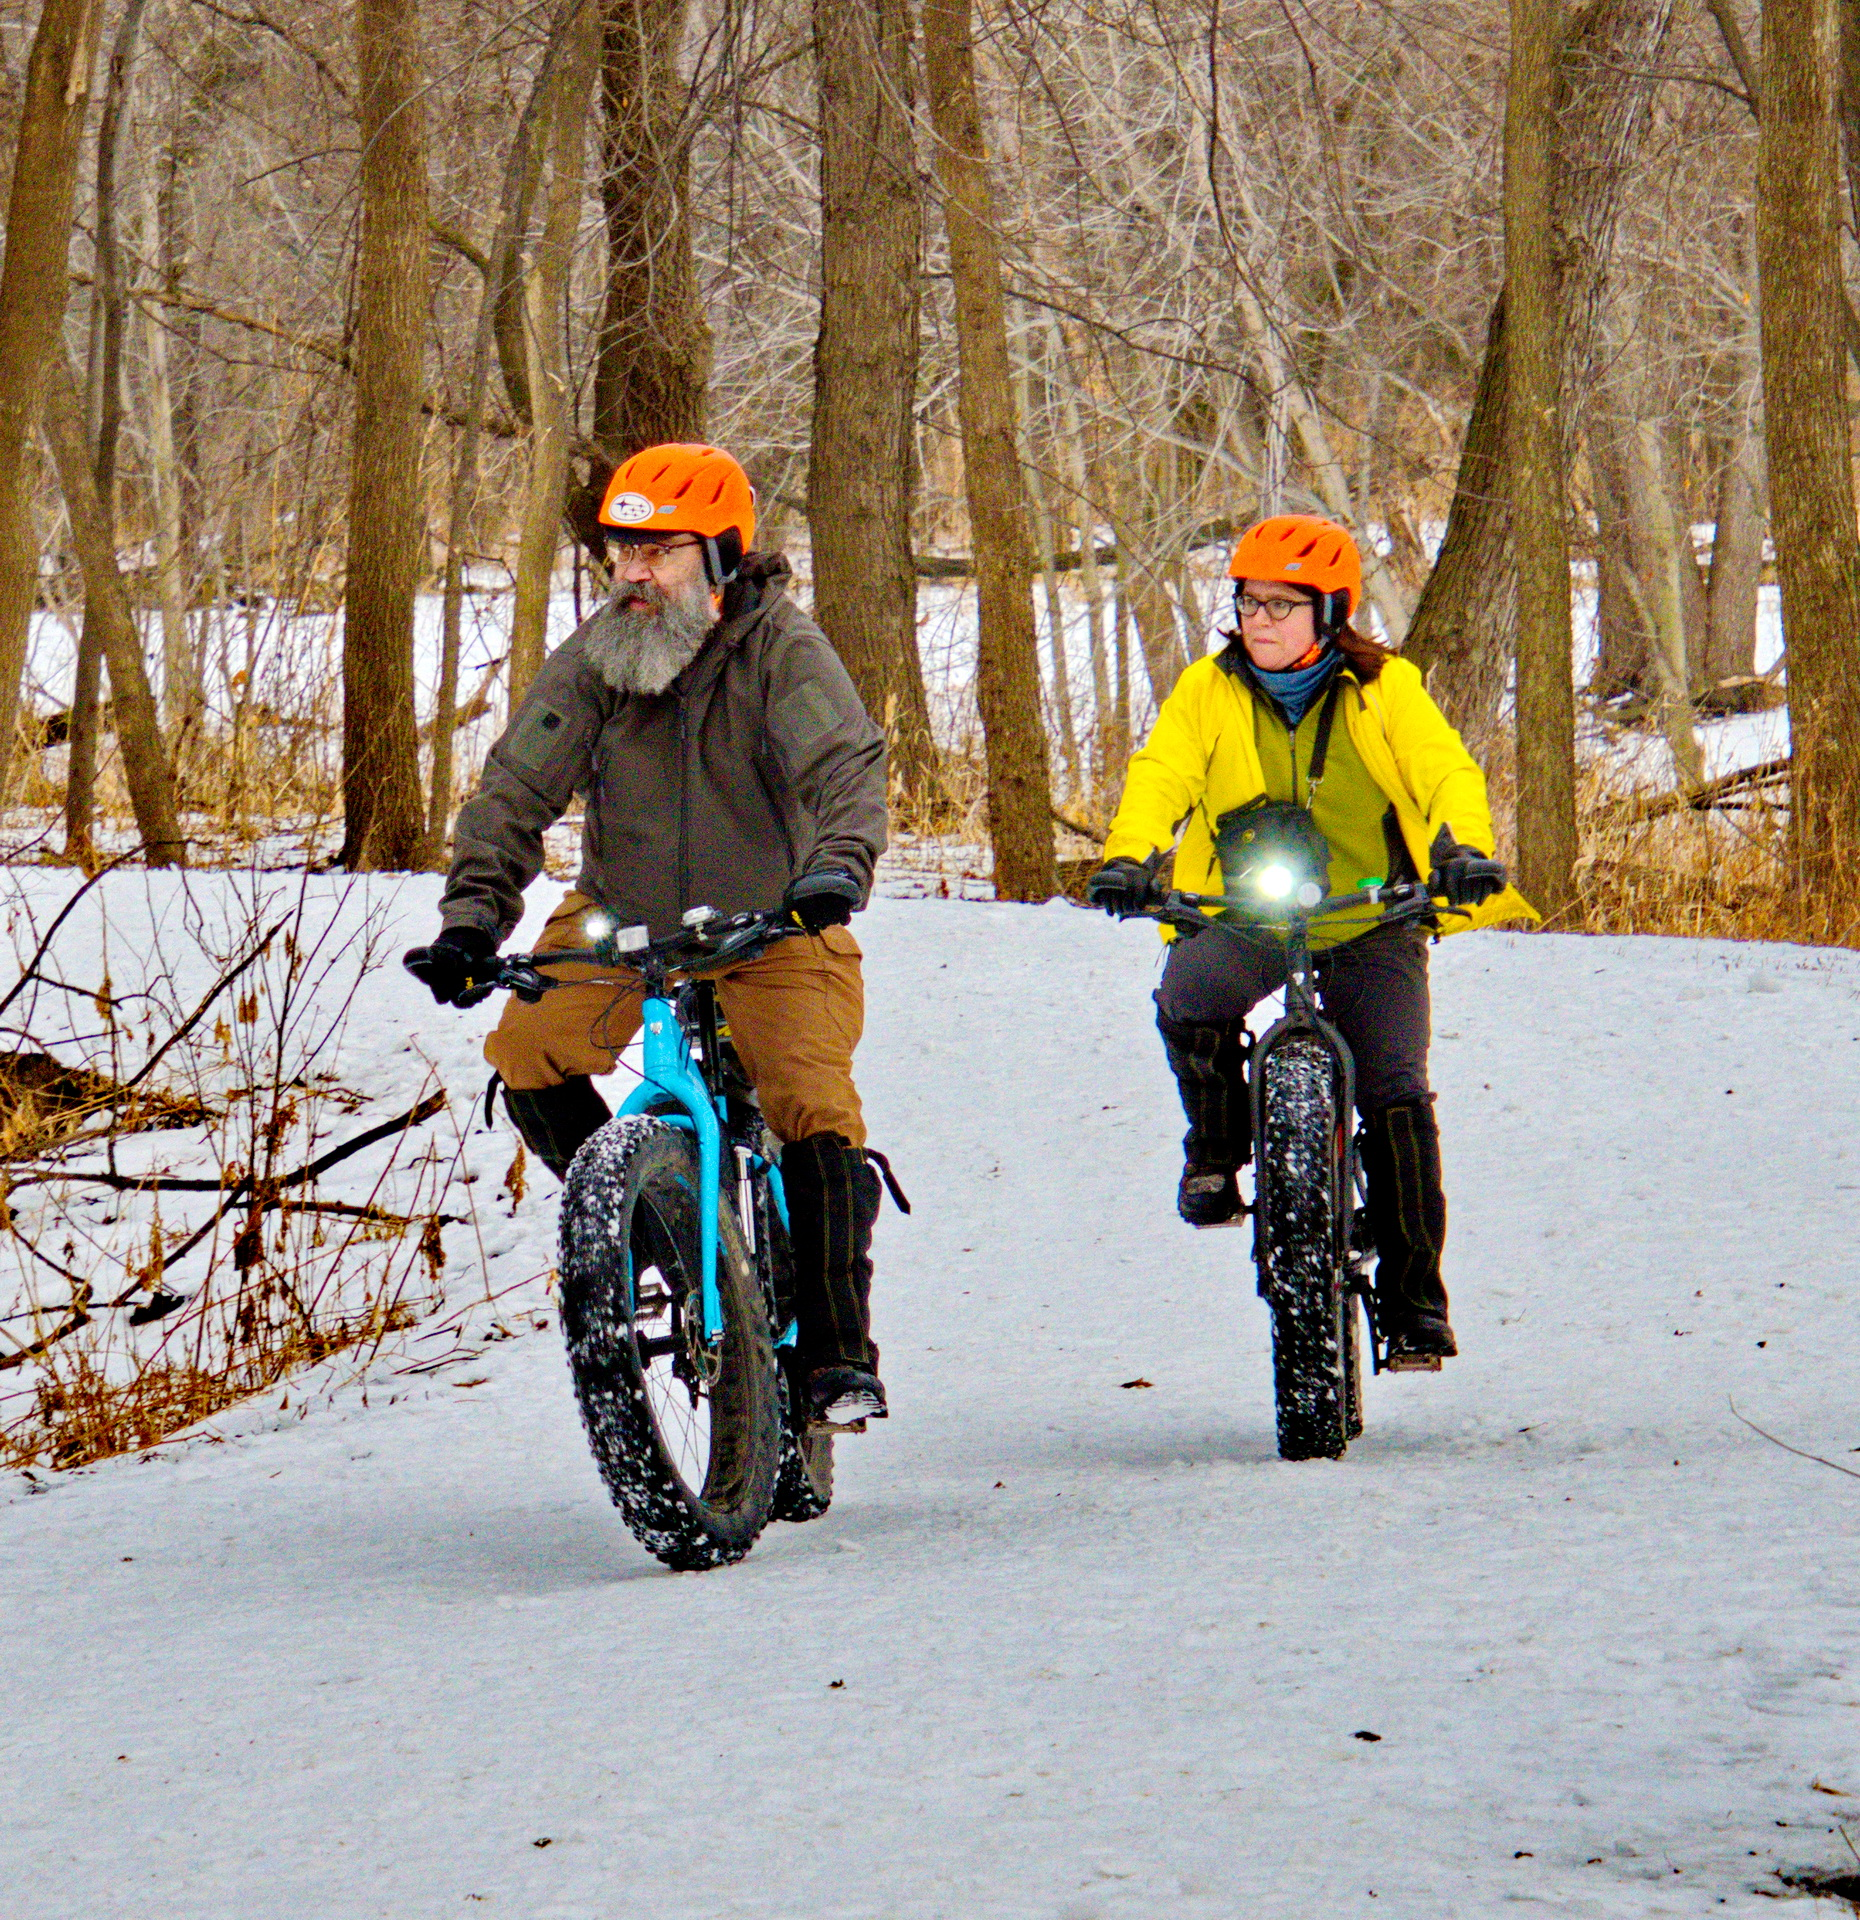 Riding the Trails - Digital (Winter) - Name Withheld Per Request